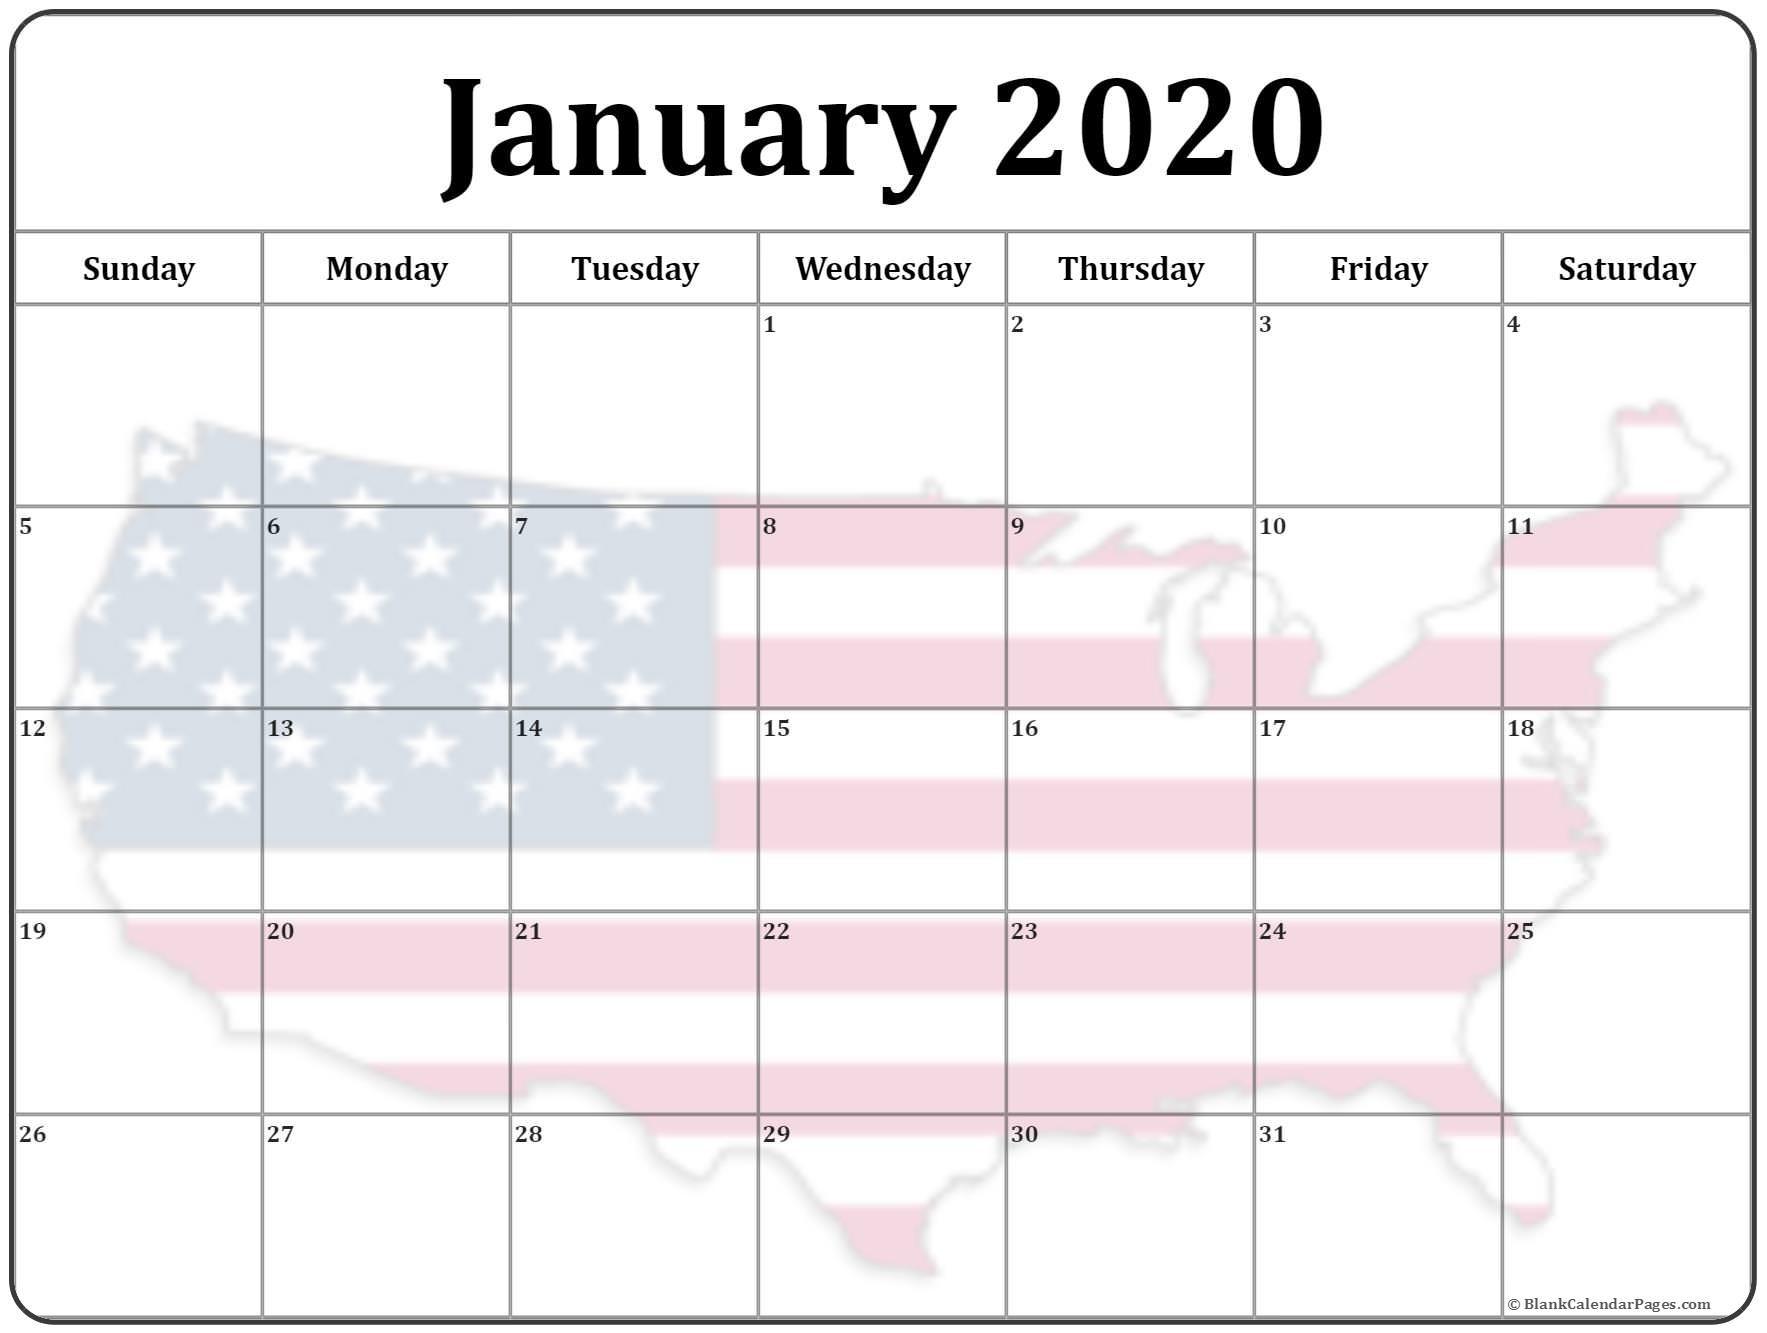 Collection of January 2020 photo calendars with image filters